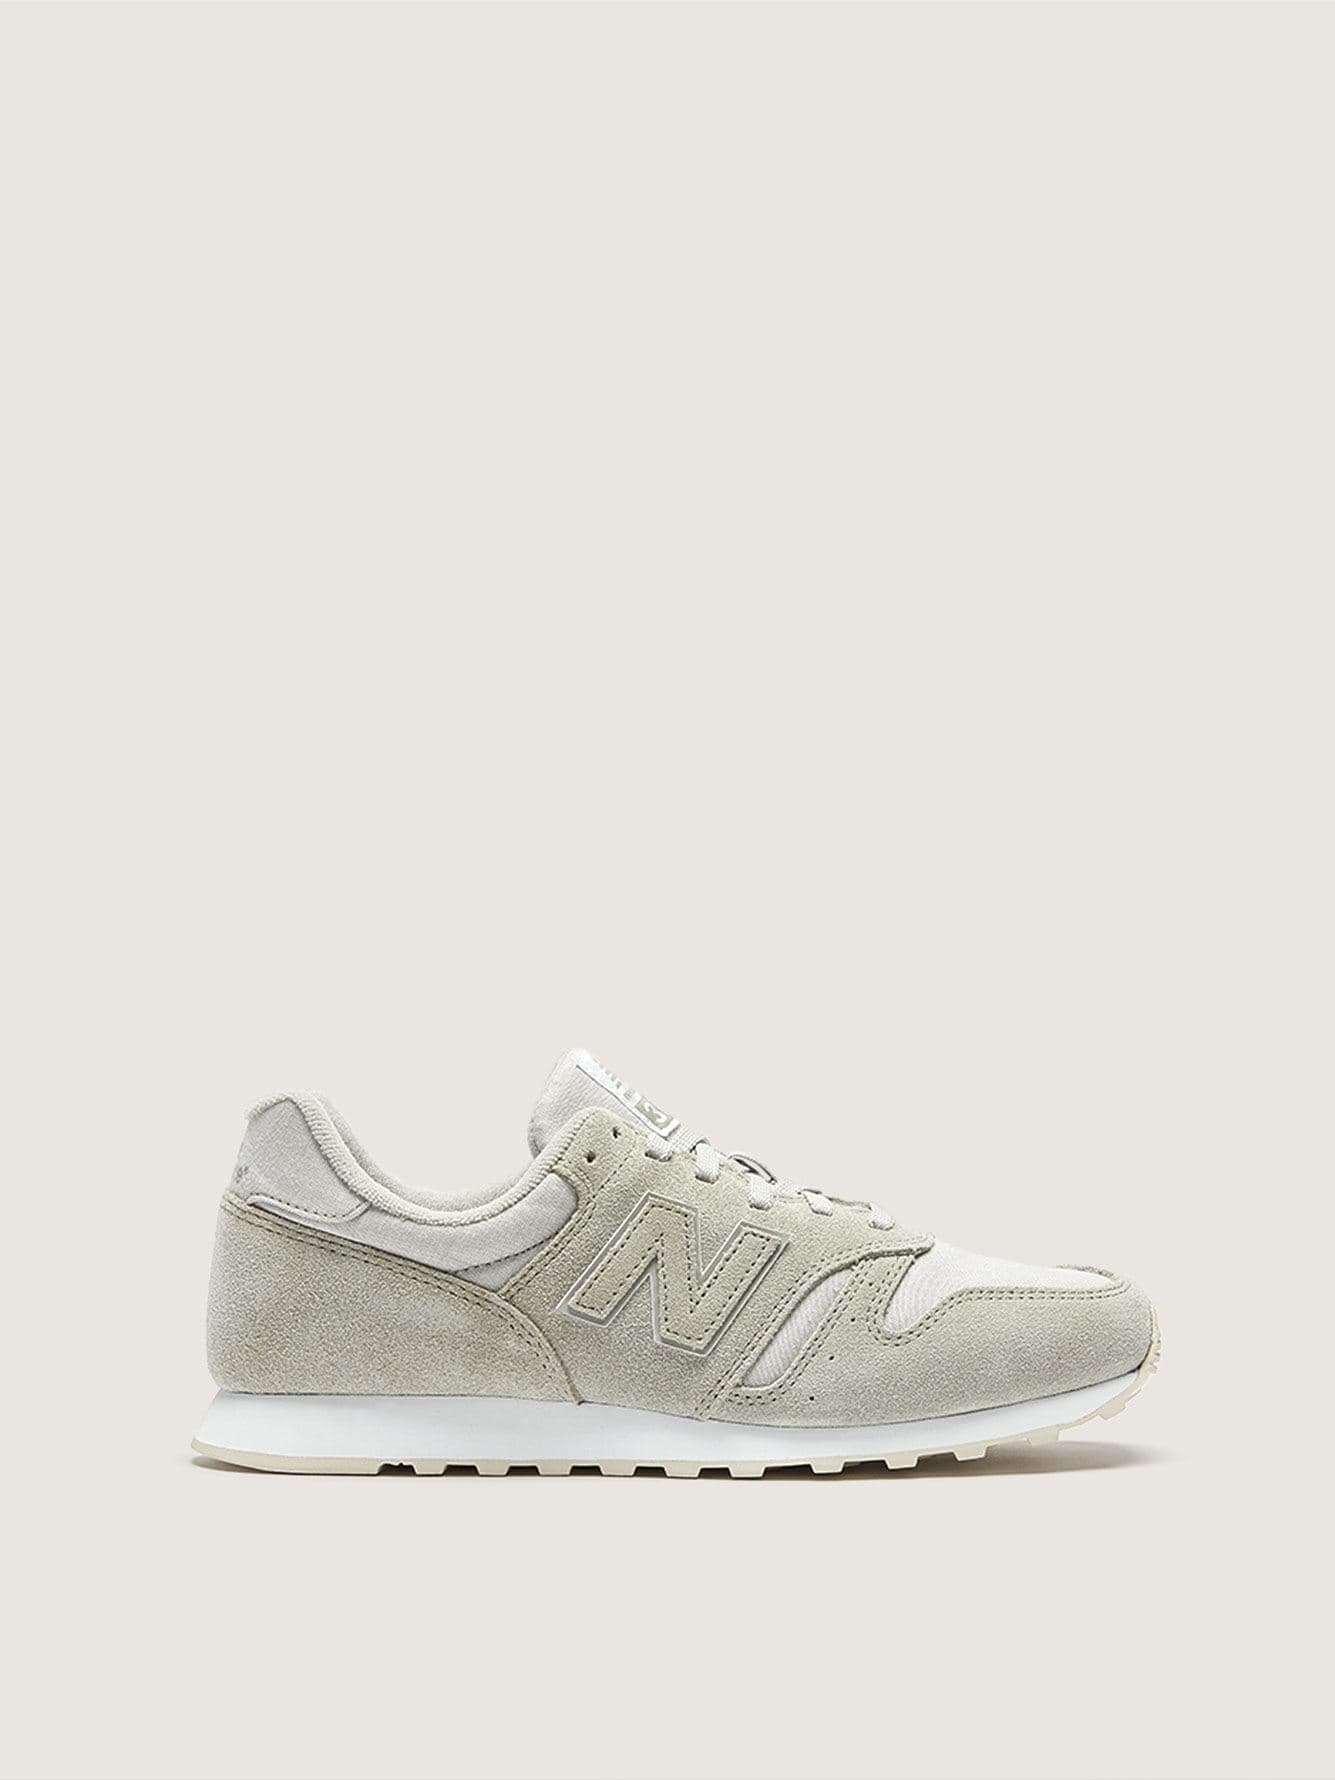 Wide Lifestyle Sneakers - New Balance